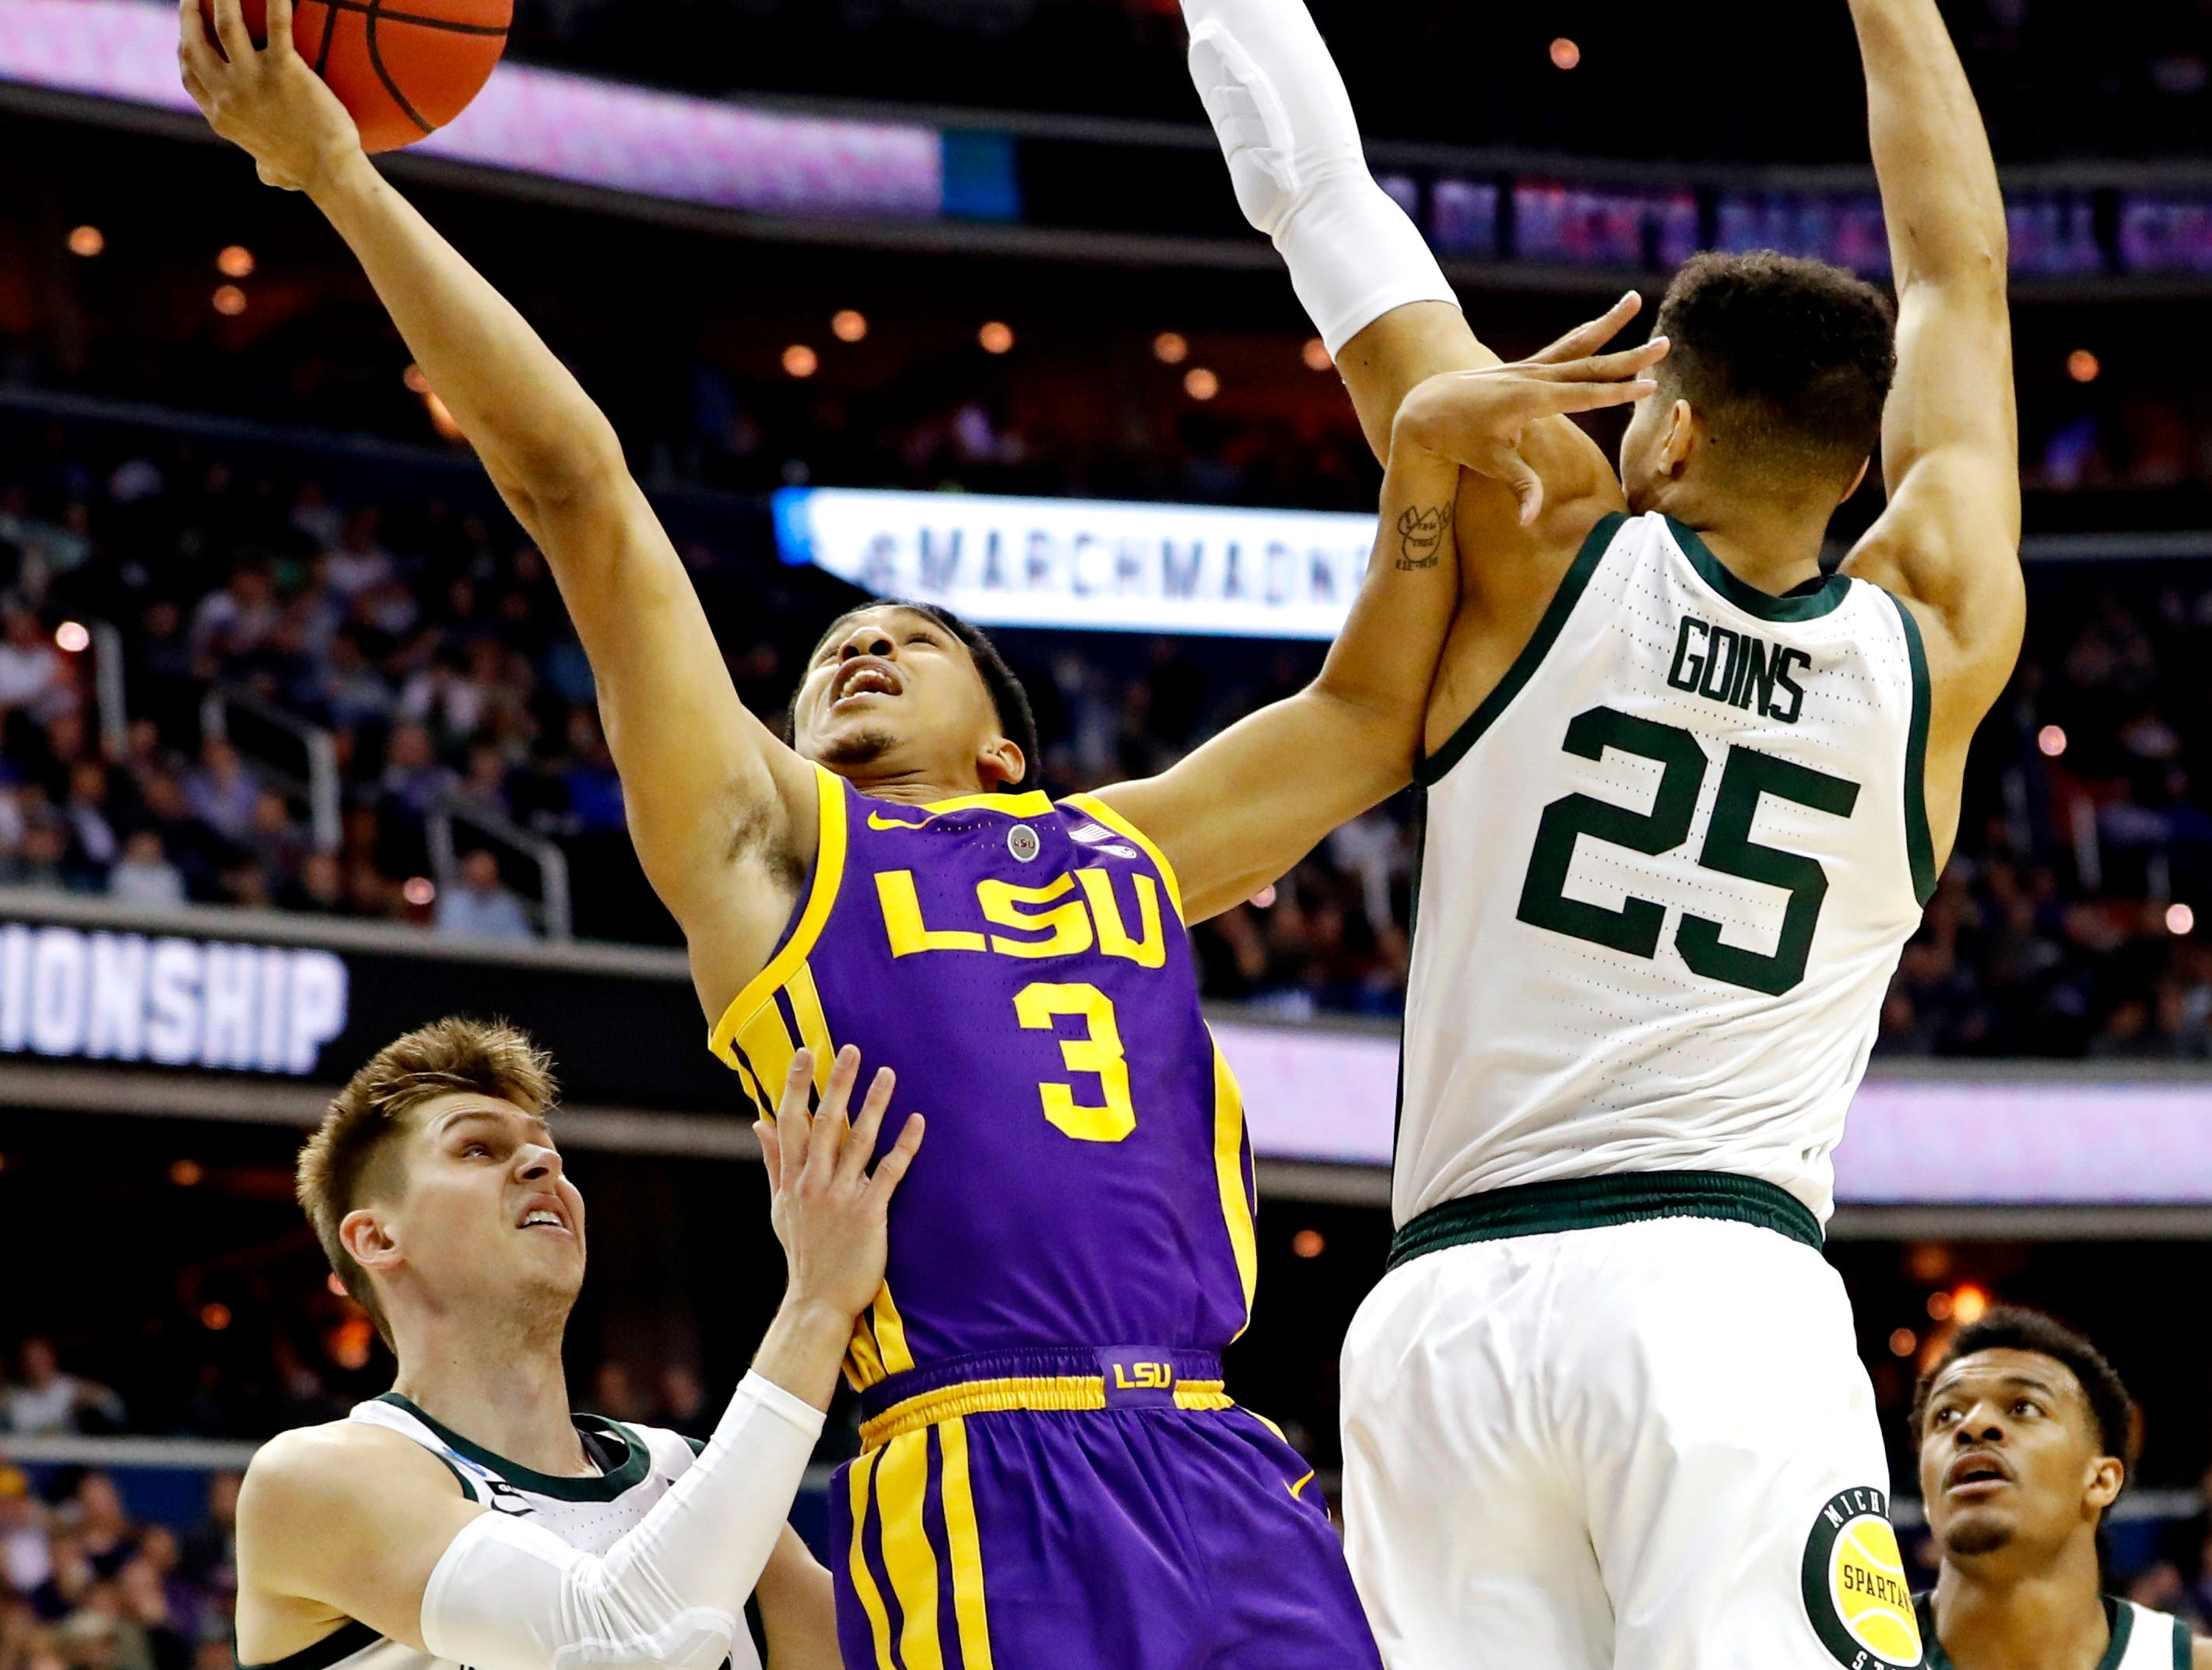 Mar 29, 2019; Washington, DC, USA; LSU Tigers guard Tremont Waters (3) shoots the ball against Michigan State Spartans forward Kenny Goins (25) and guard Matt McQuaid (20) during the first half in the semifinals of the east regional of the 2019 NCAA Tournament at Capital One Arena. Mandatory Credit: Geoff Burke-USA TODAY Sports